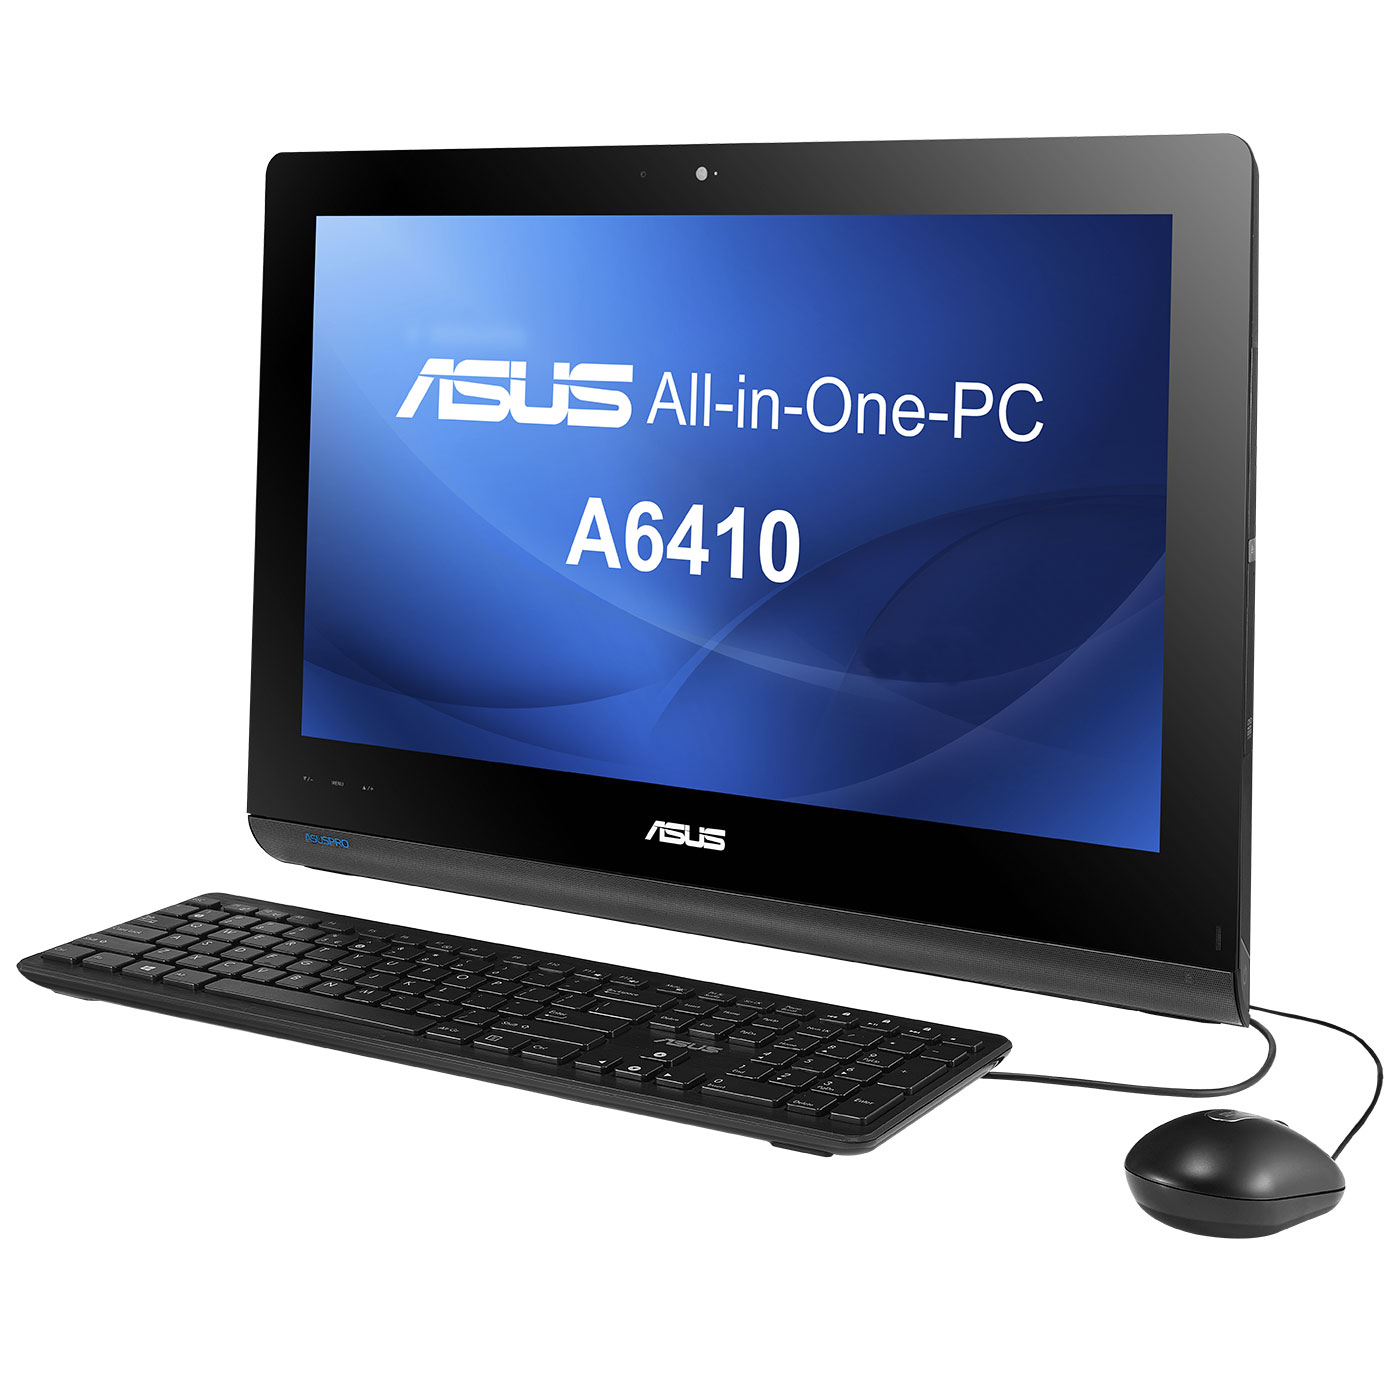 Asus all in one pc a6410 bc021t pc de bureau asus sur - Ordinateur de bureau windows 7 pro ...